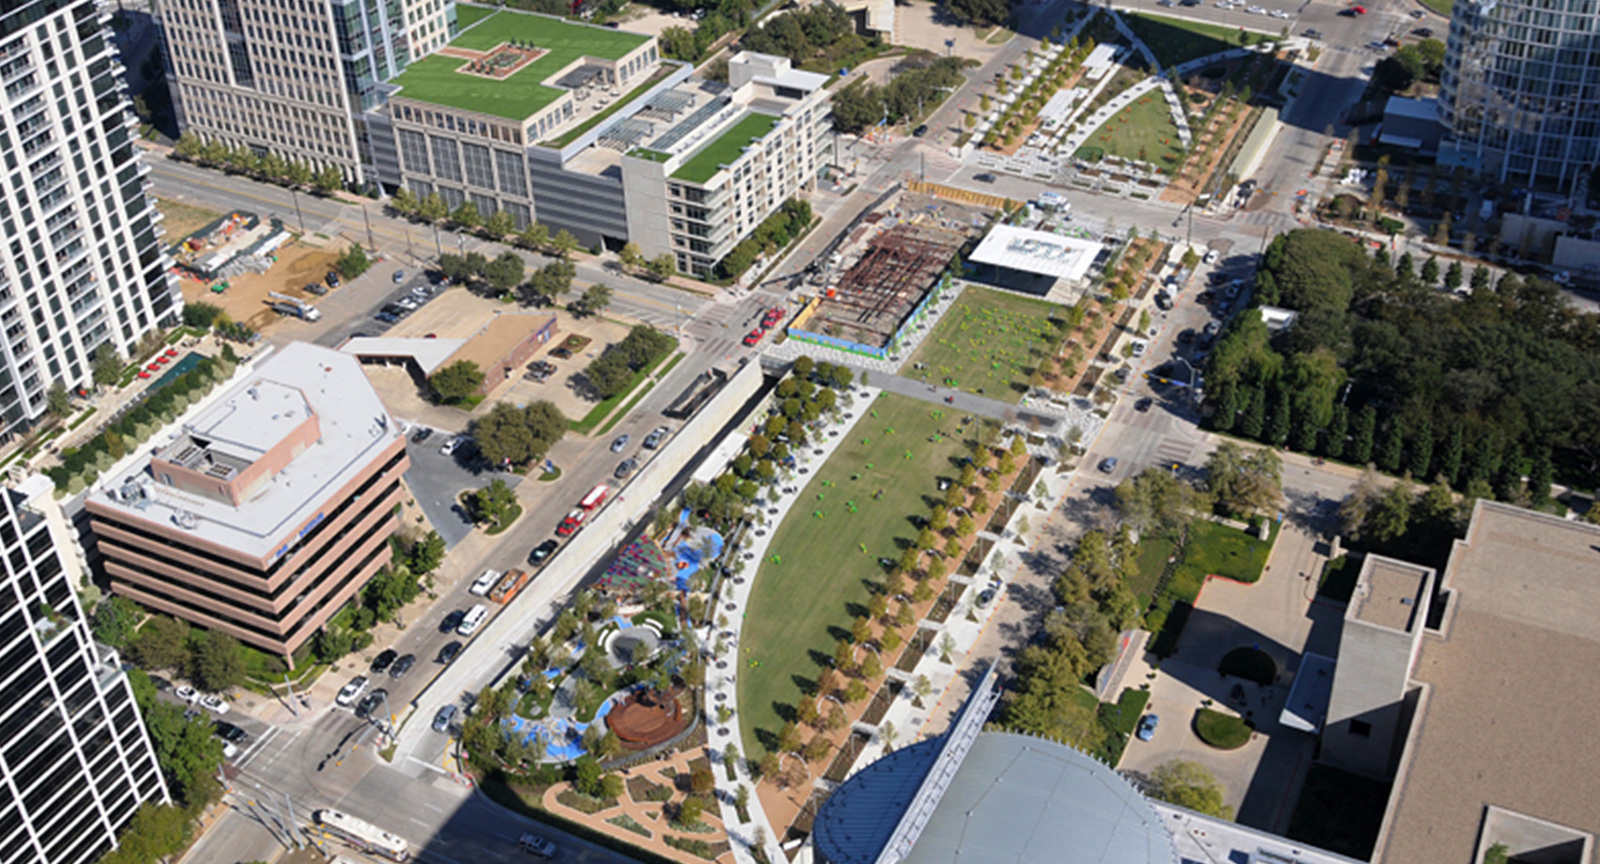 Dallas Arts District Community Klyde Warren Park